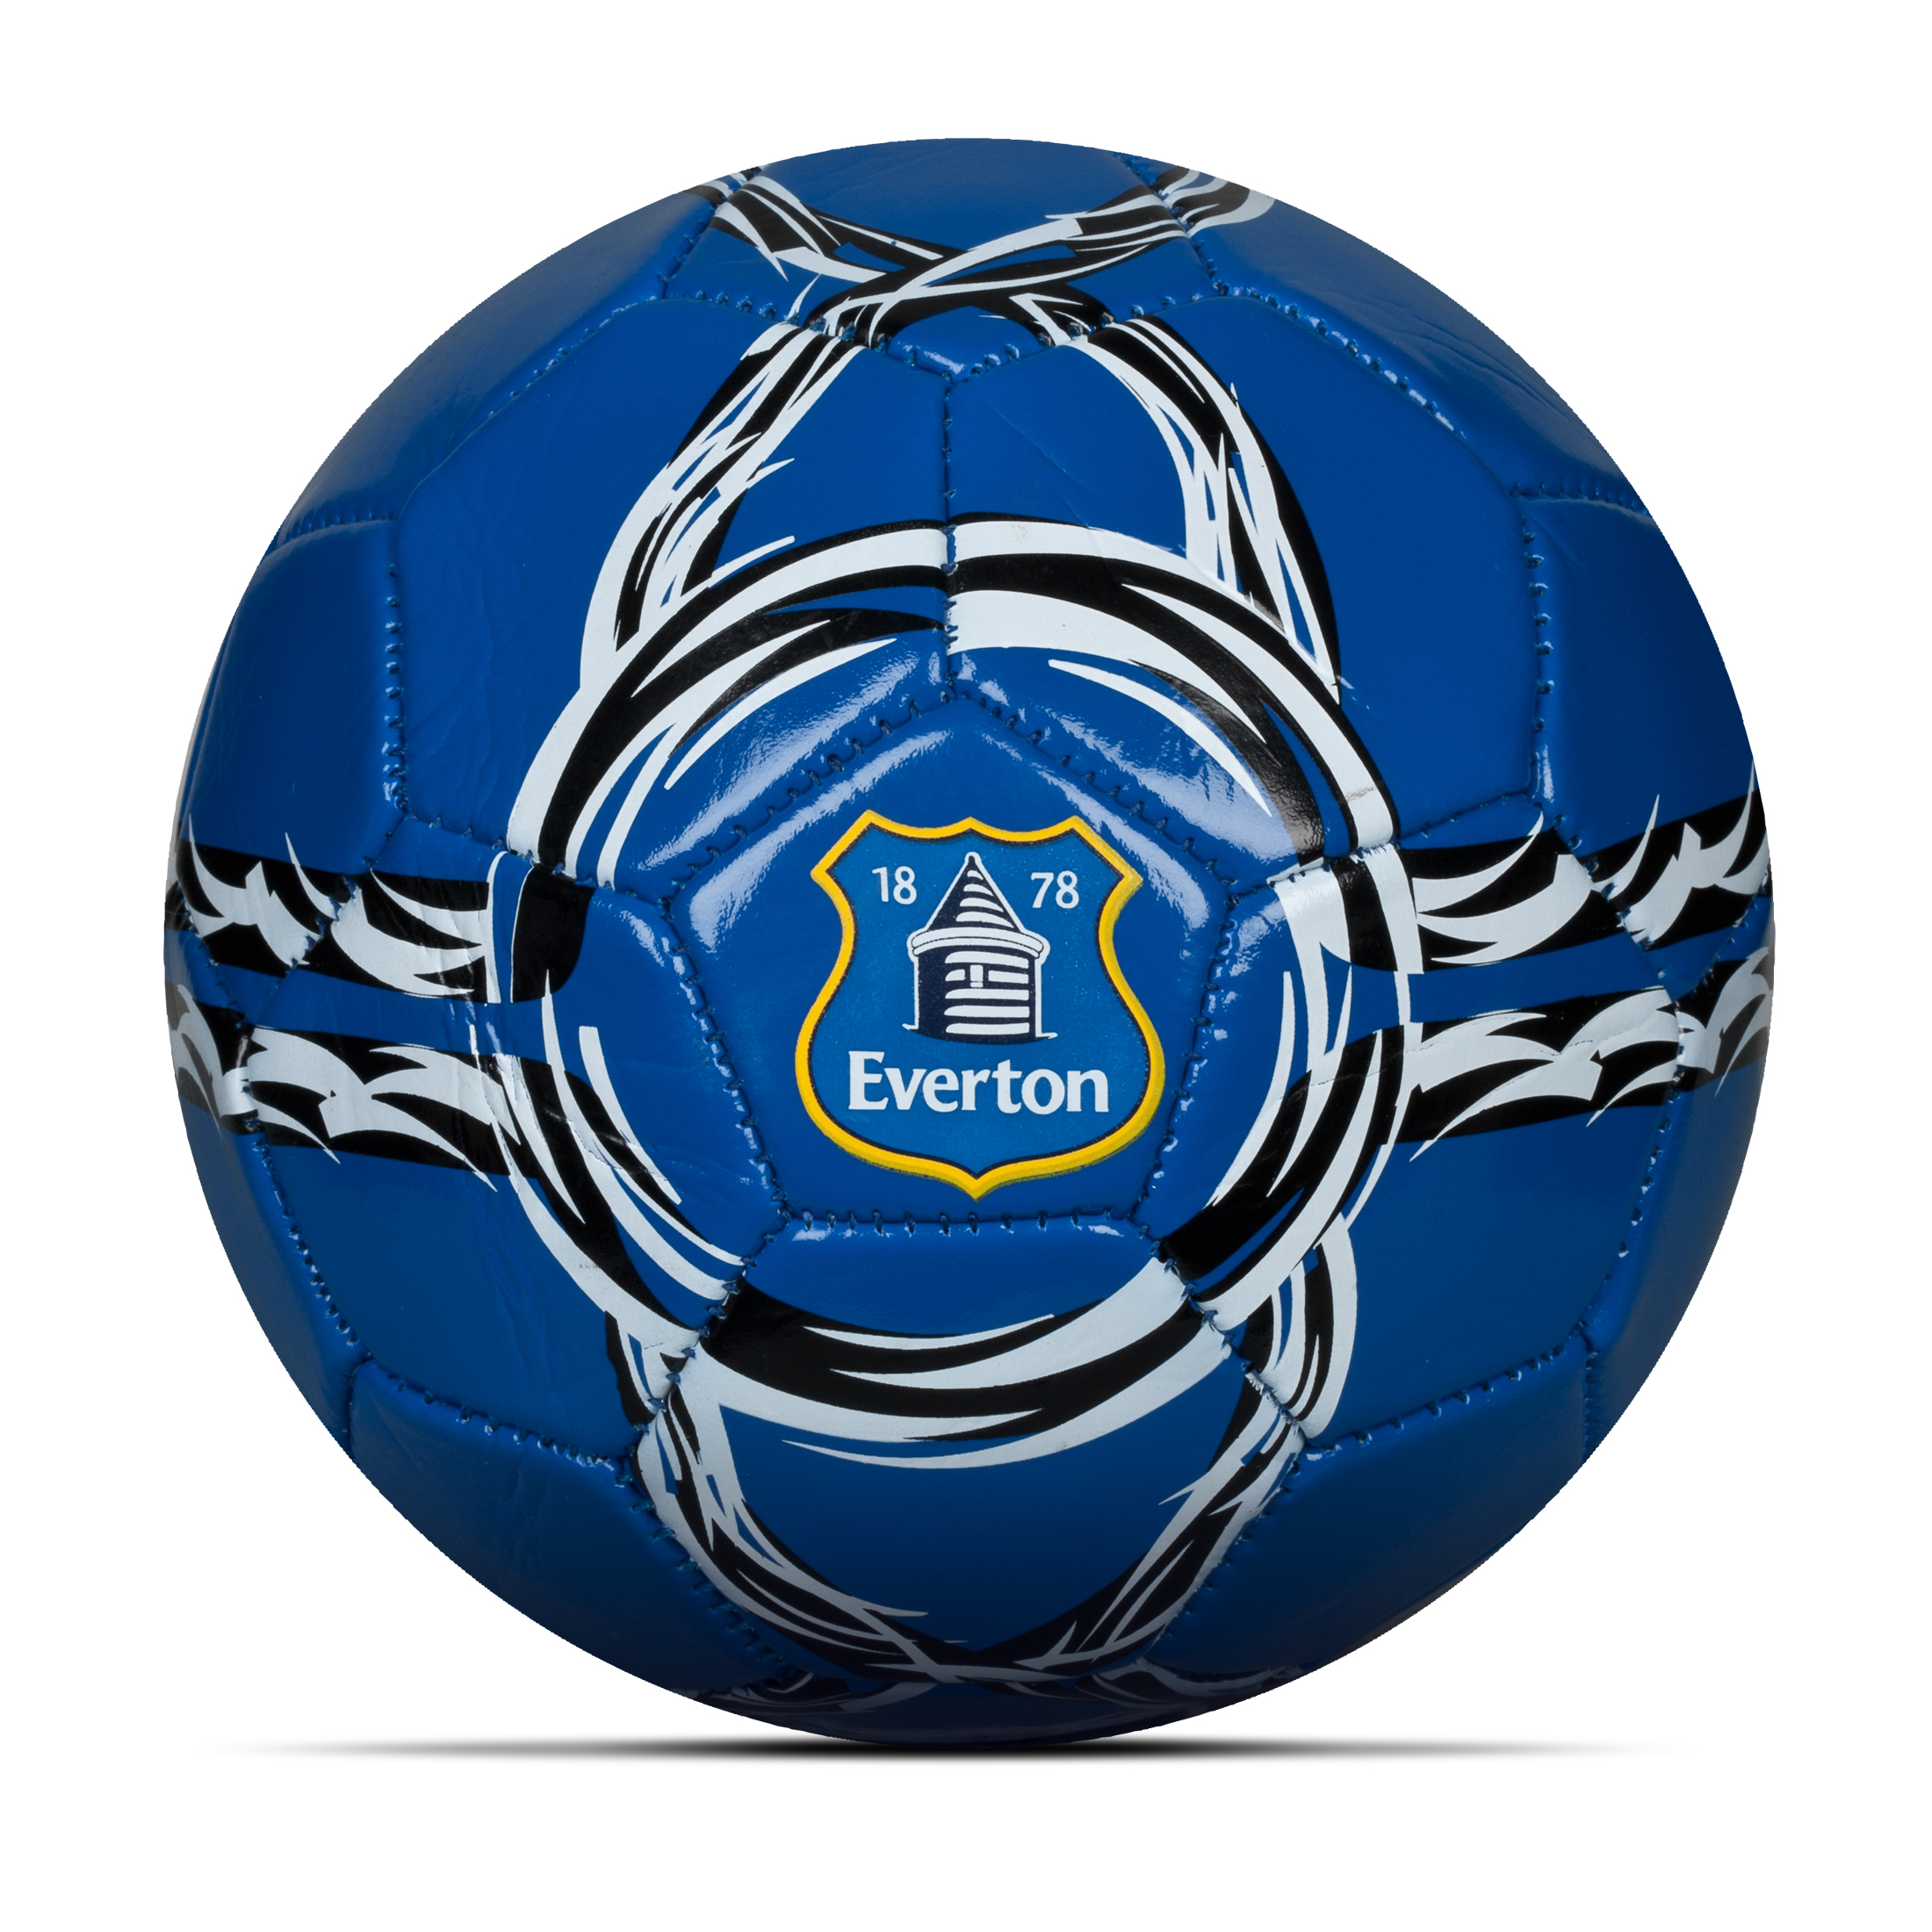 Everton Core Football - Size 2 - Royal